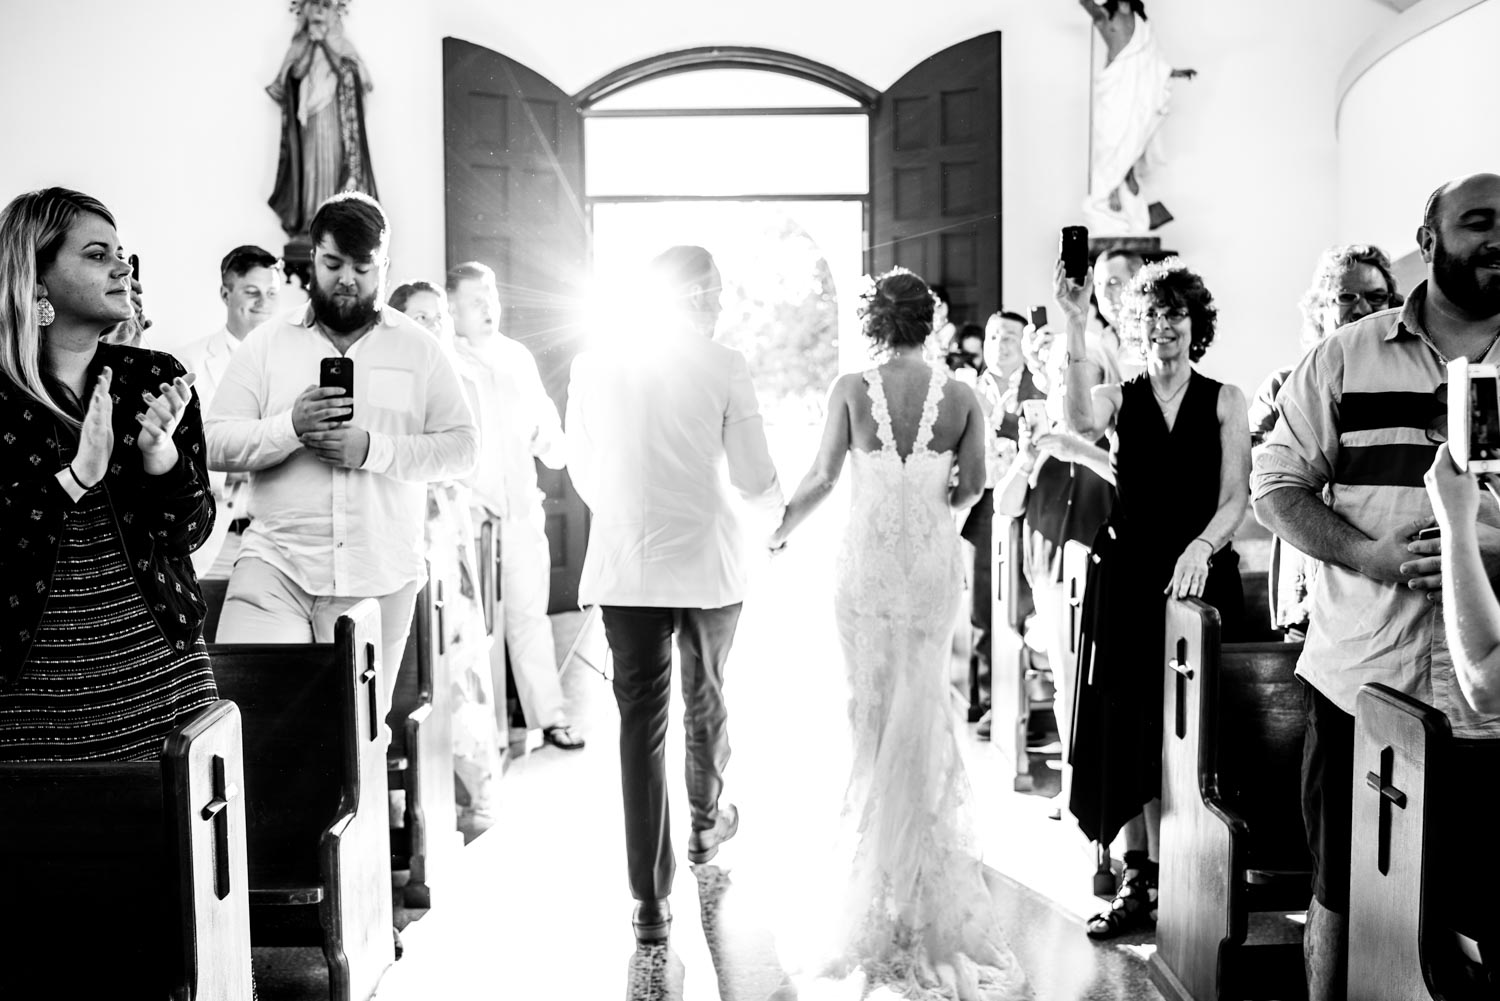 Black and white photograph of the bride and groom from behind exiting the church into the bright sunlight.